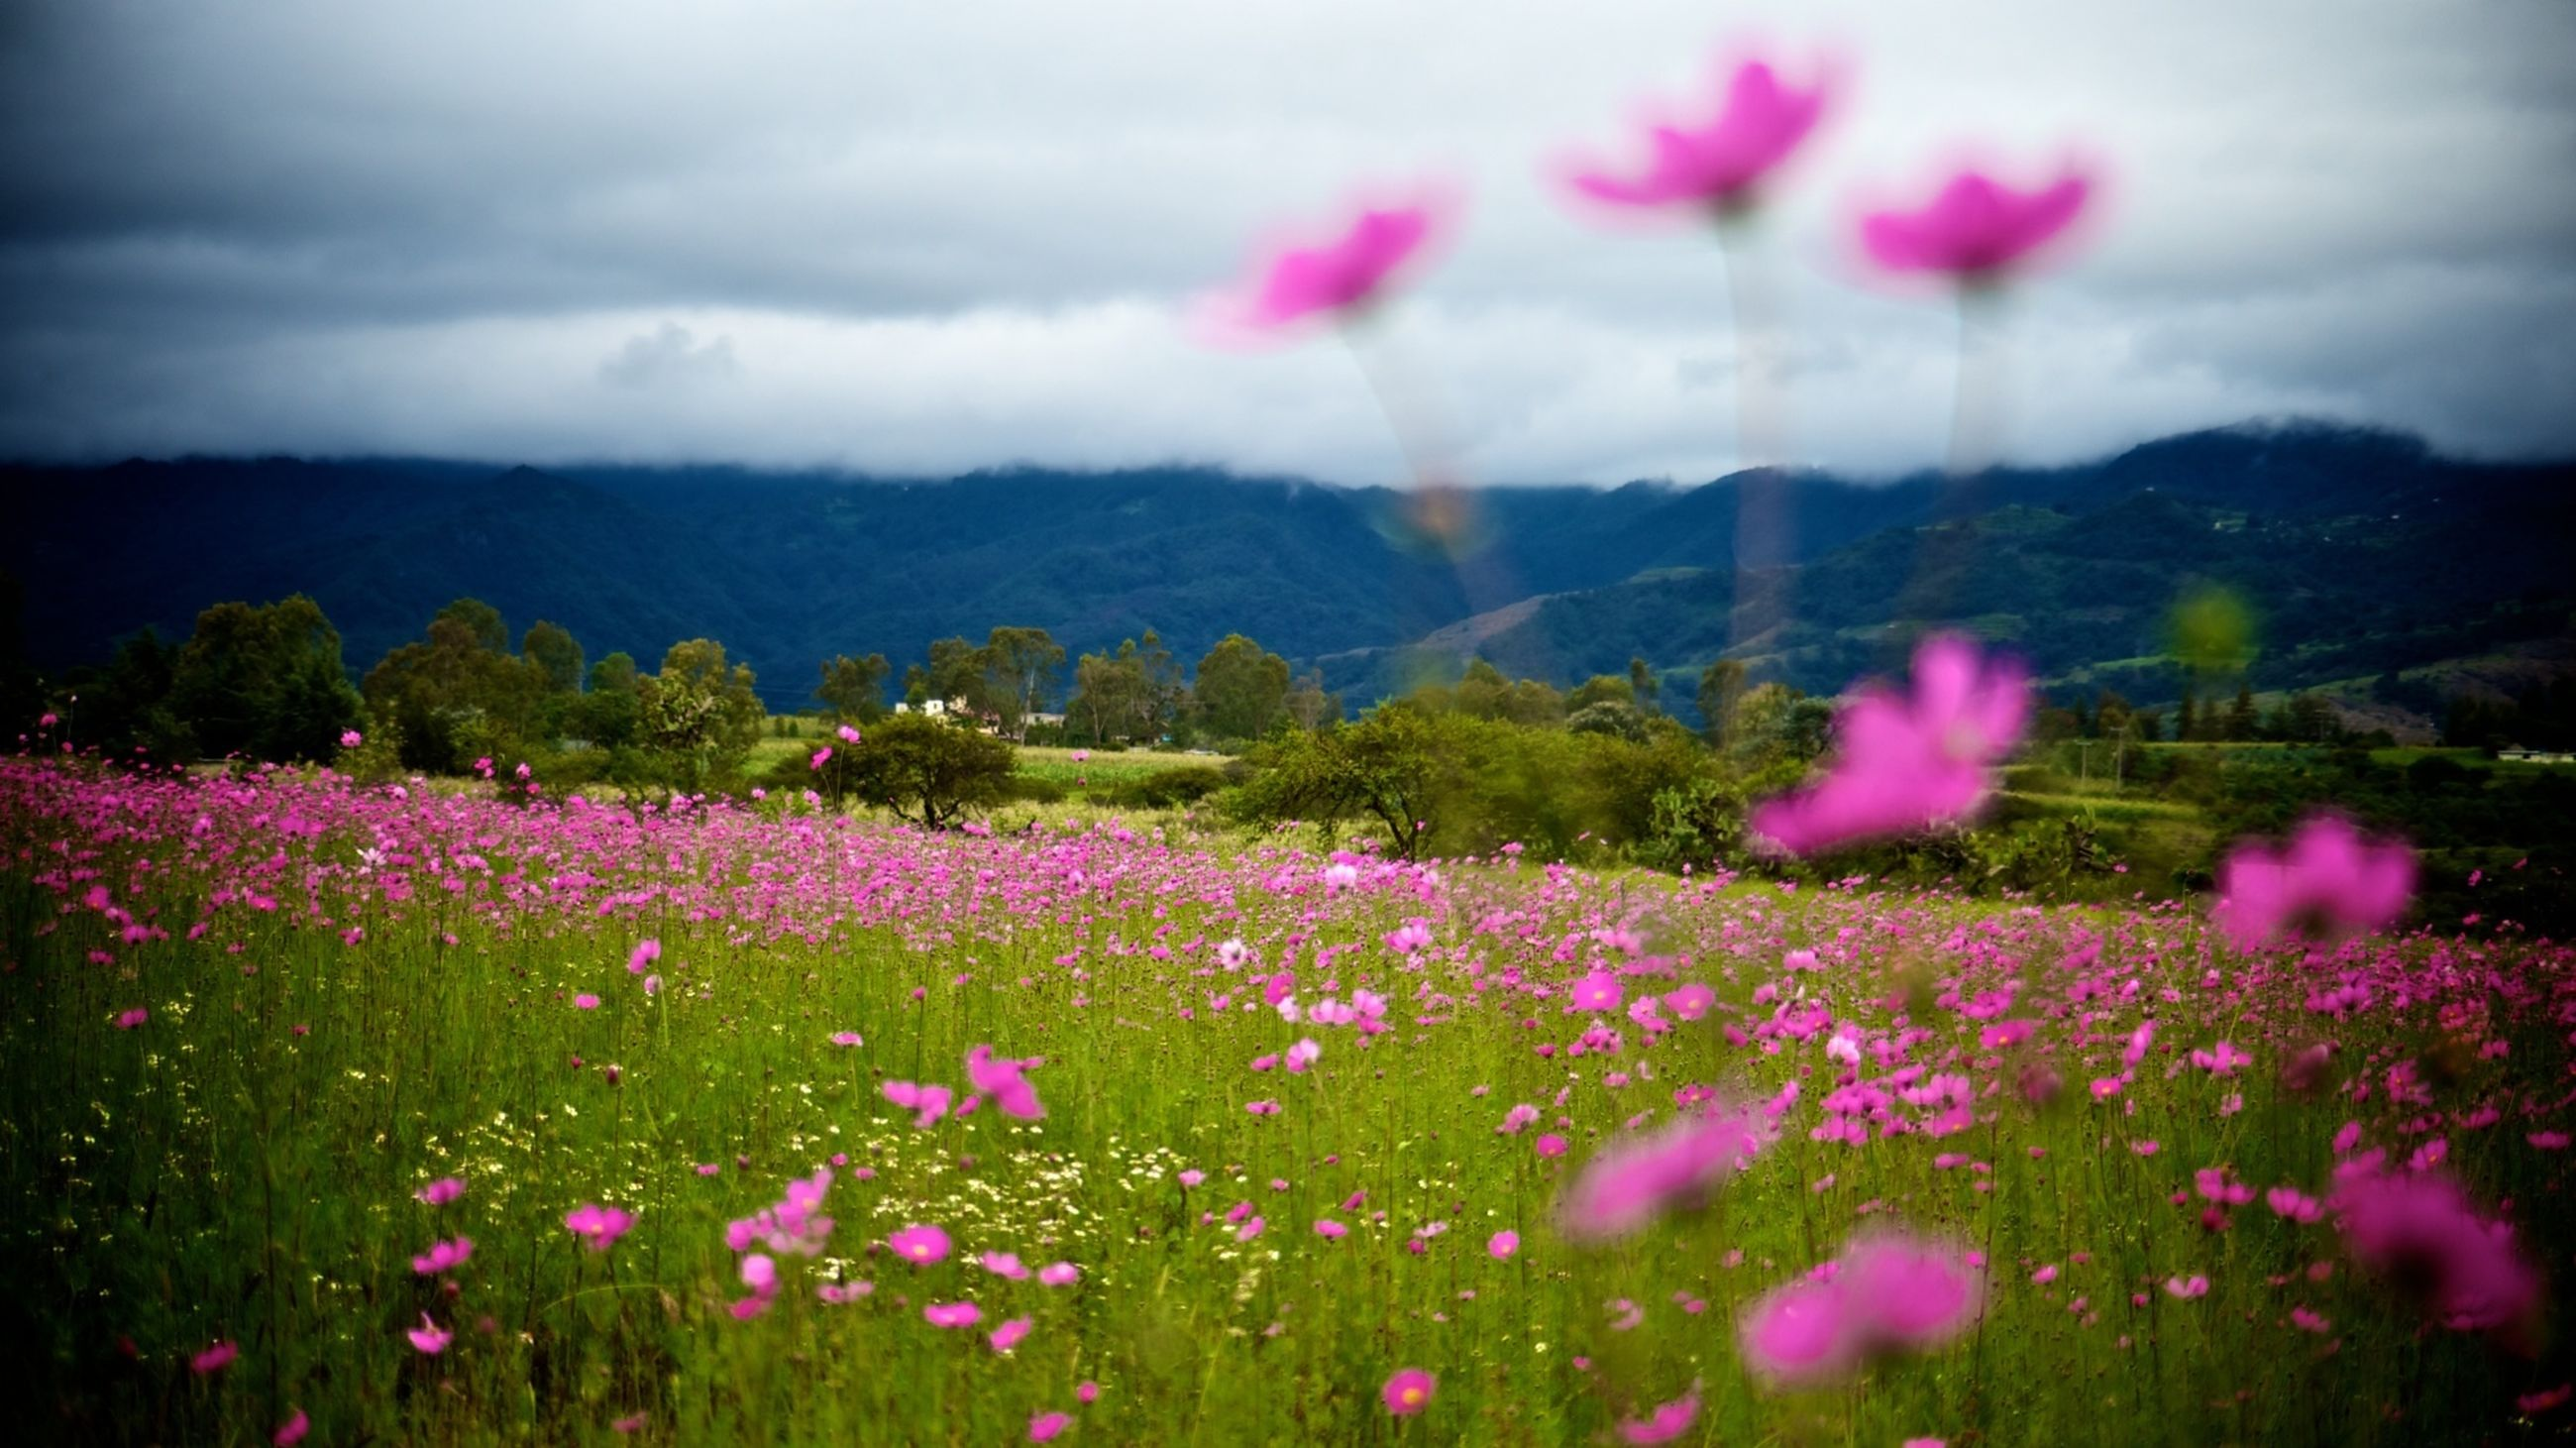 flower, beauty in nature, growth, sky, mountain, freshness, landscape, fragility, nature, field, tranquil scene, plant, cloud - sky, scenics, tranquility, blooming, pink color, petal, in bloom, mountain range